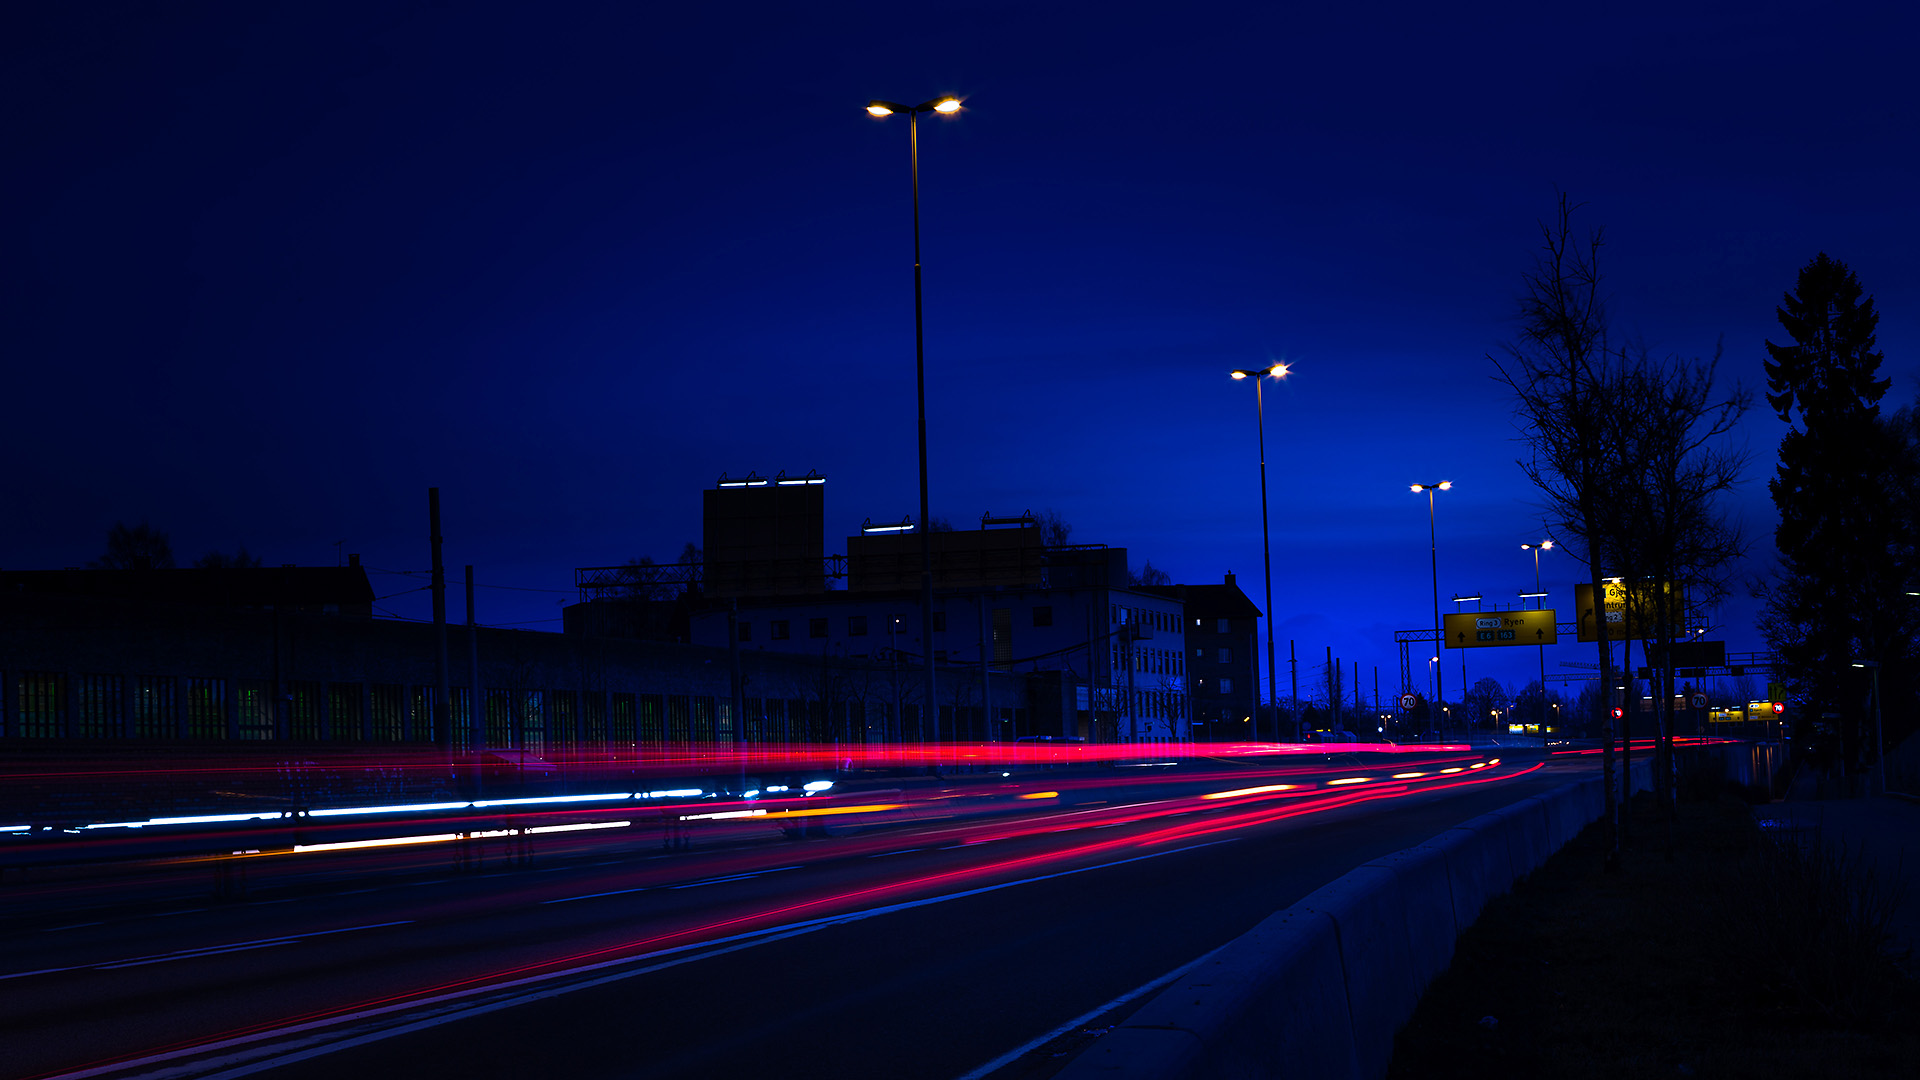 A darkly lit image of a highway. Streaks of head and red tail lights can be seen in the lower part of the frame. In the distance are silhouettes of buildings, road lights and signs.